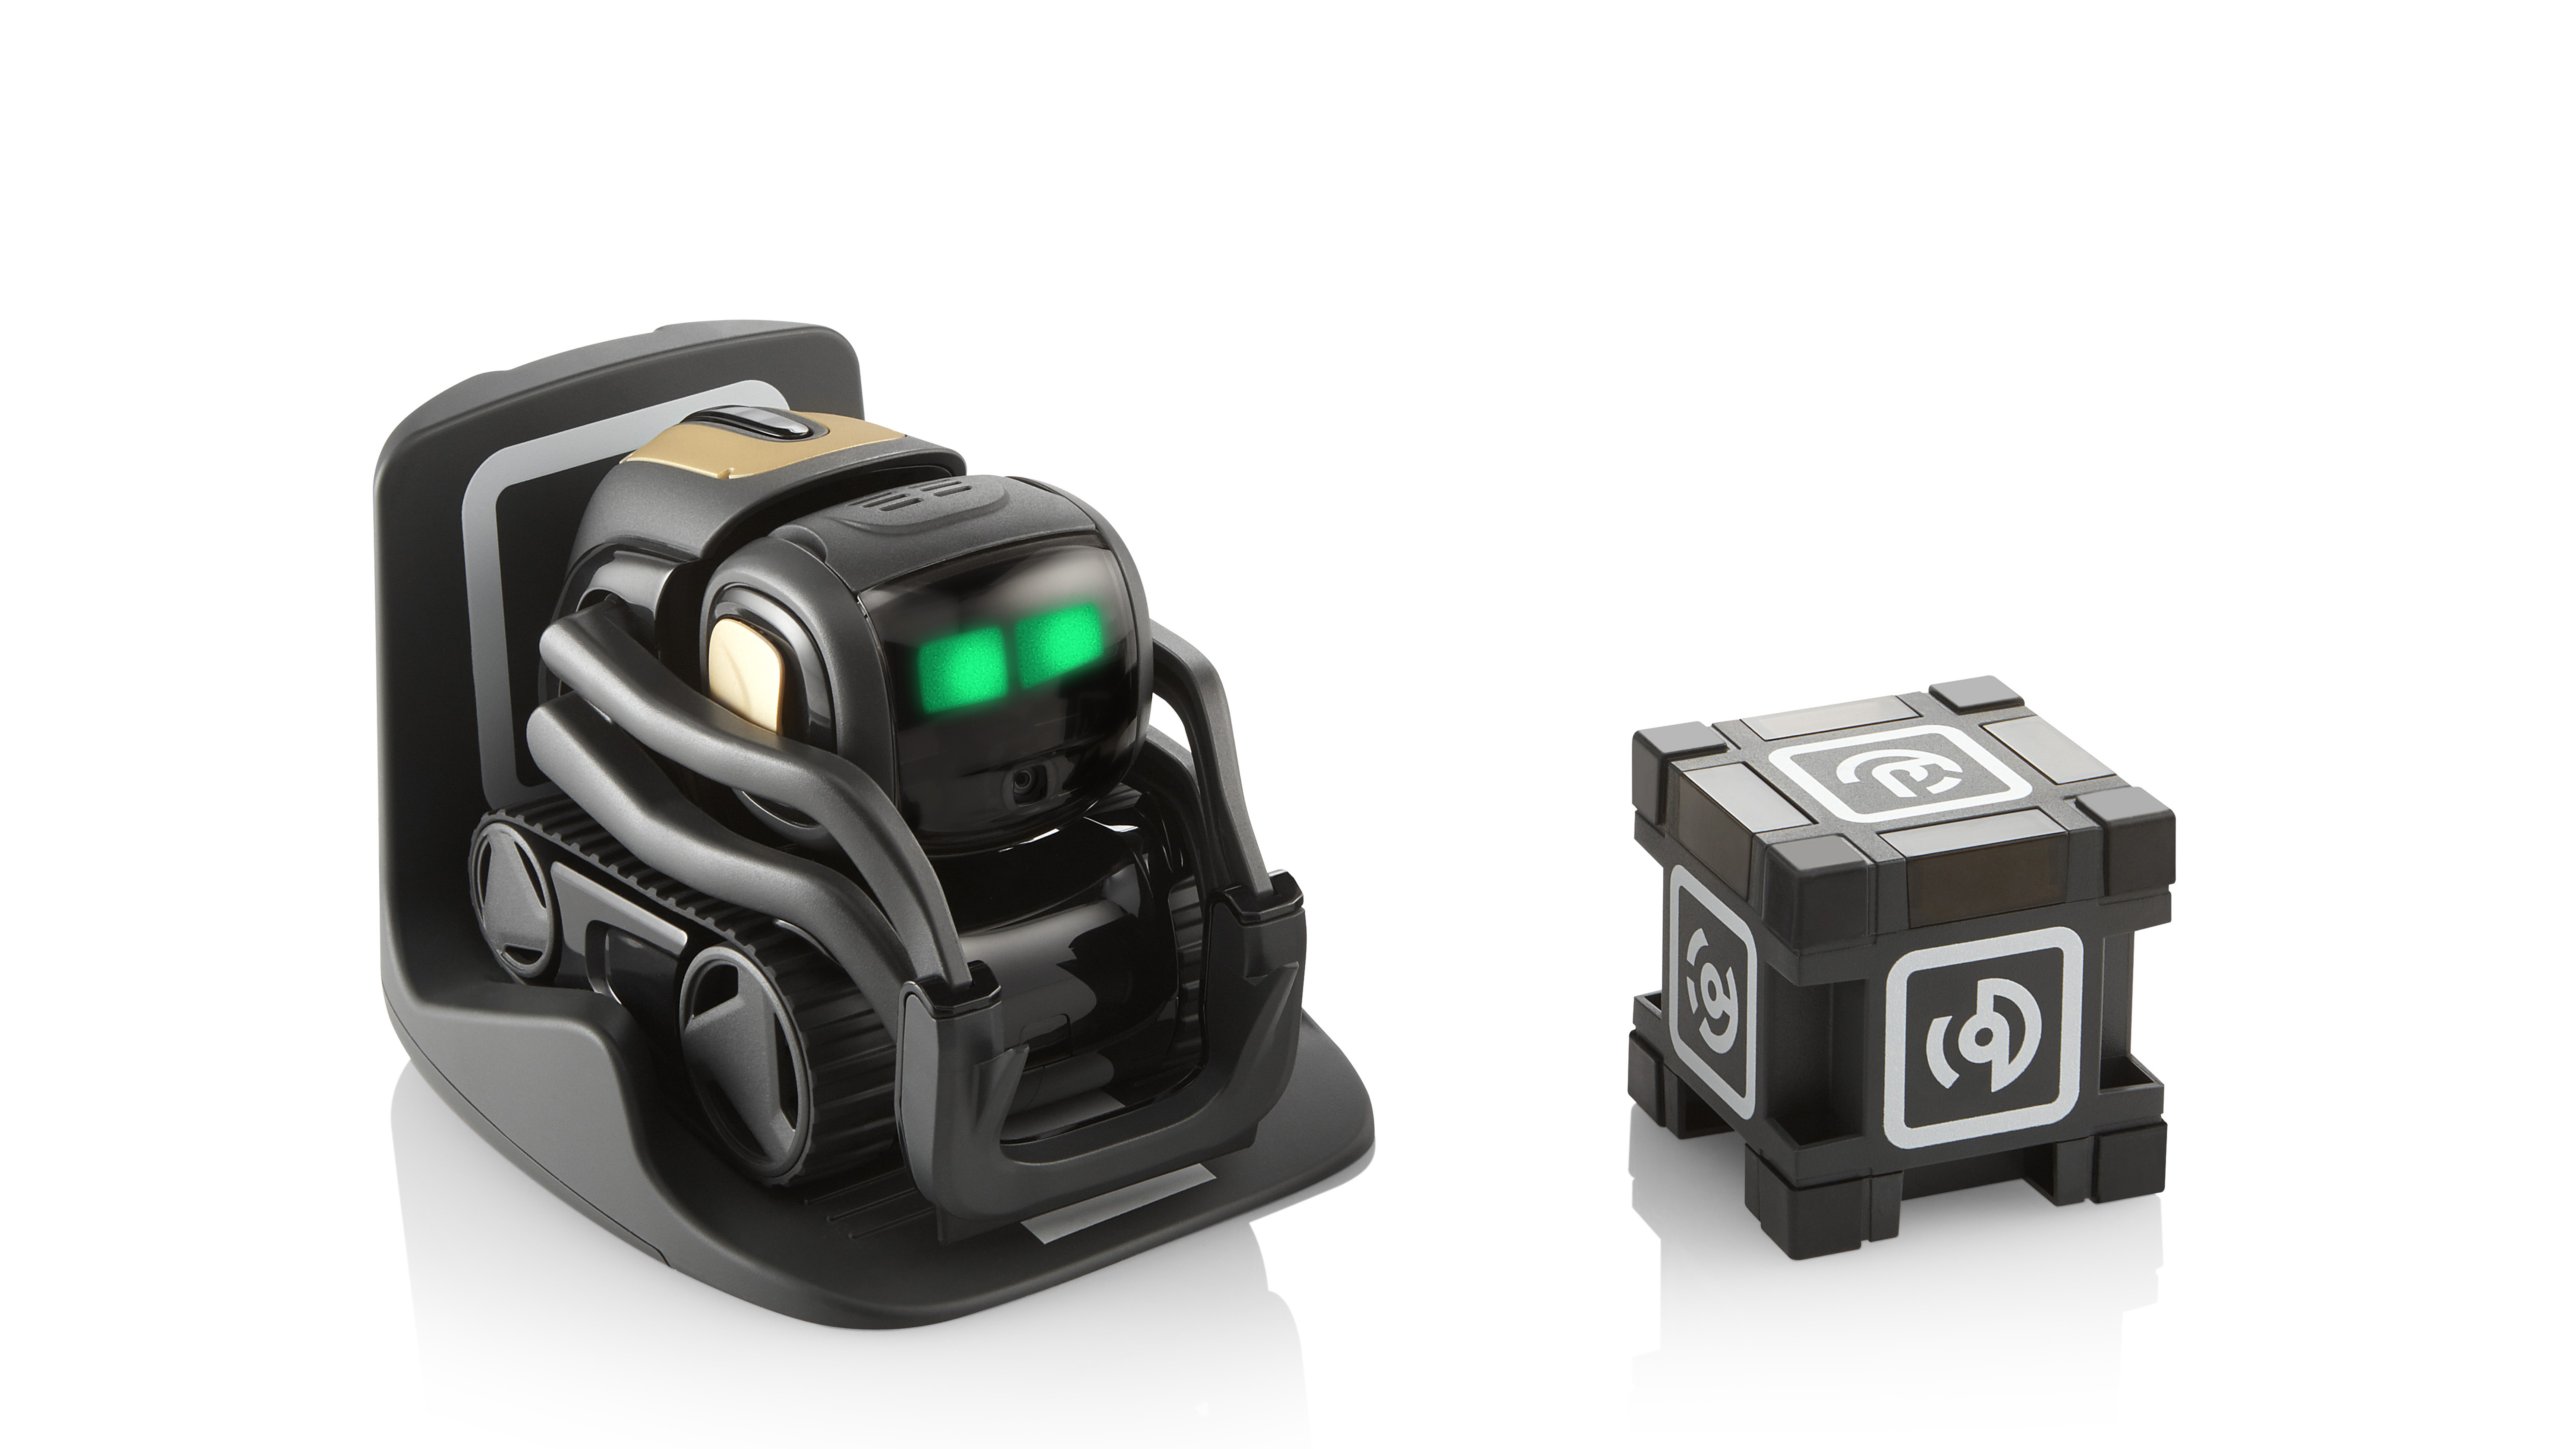 - Vector Product 005 noLogo - Anki Vector: Edge-based smarts in a cute companion robot for $250 – Stacey on IoT